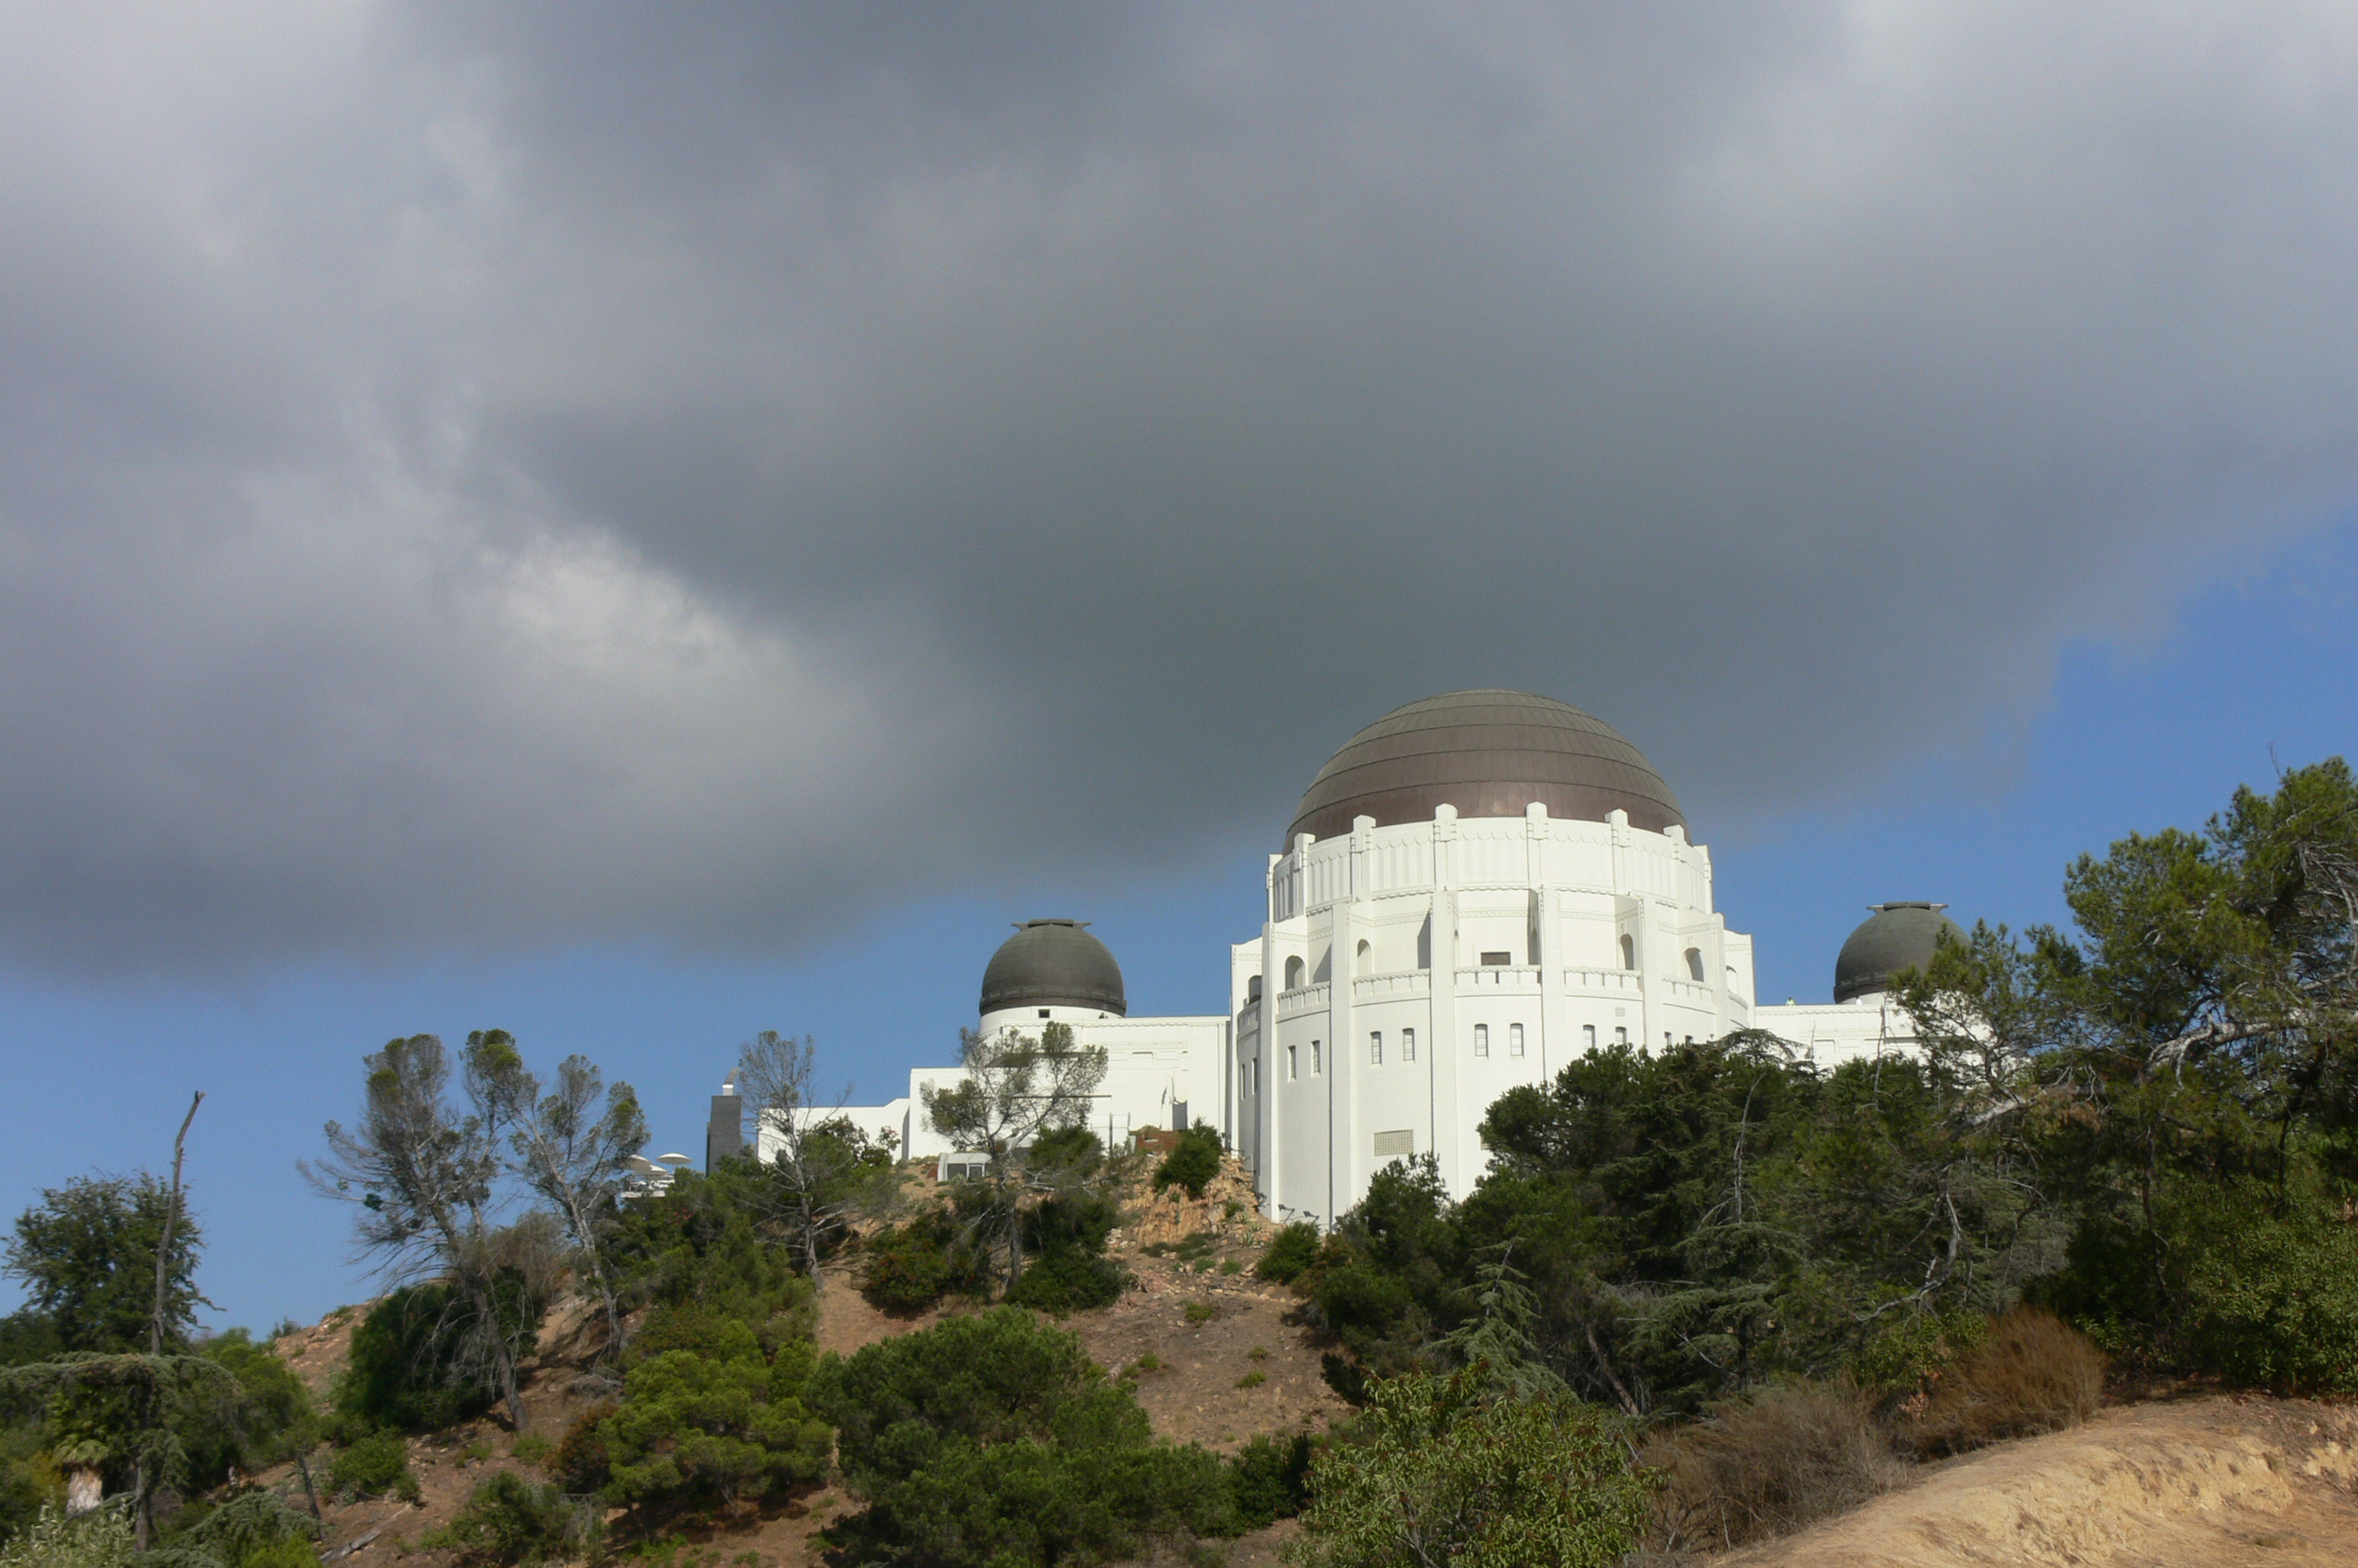 Griffith Observatory, Los Angeles: Hours, Address, Griffith Observatory Reviews: 5/5